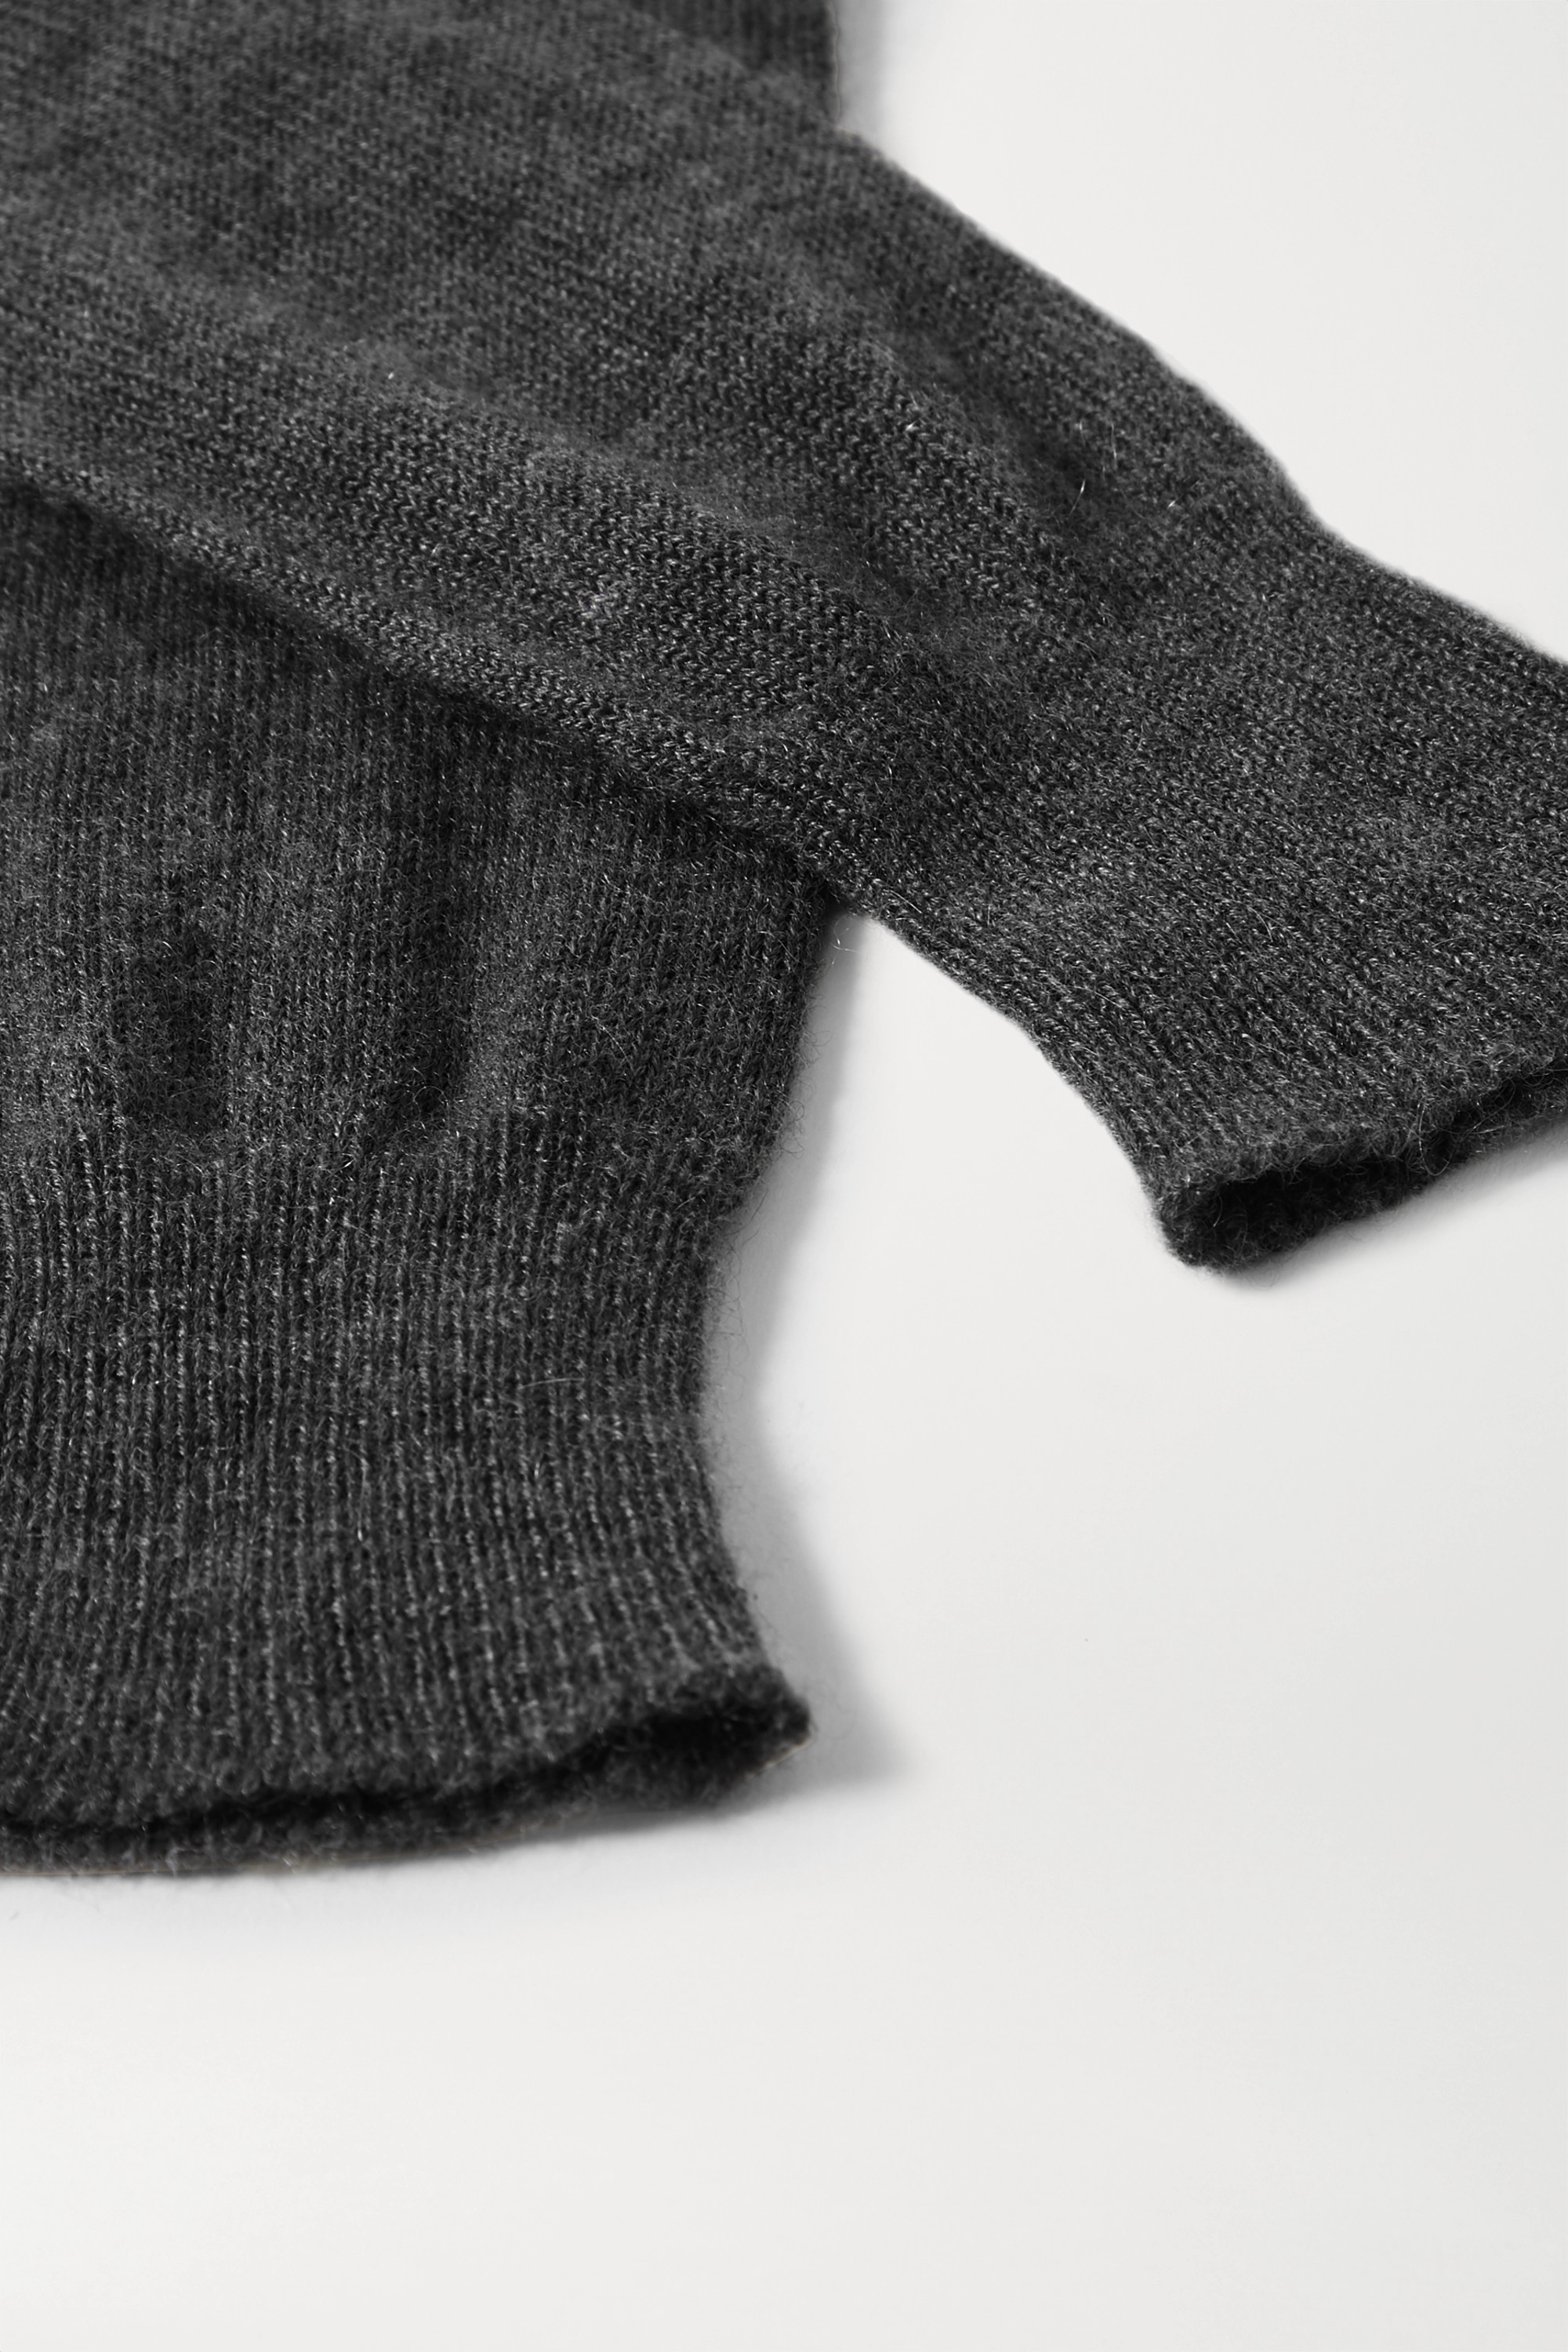 The Row Besede cashmere gloves